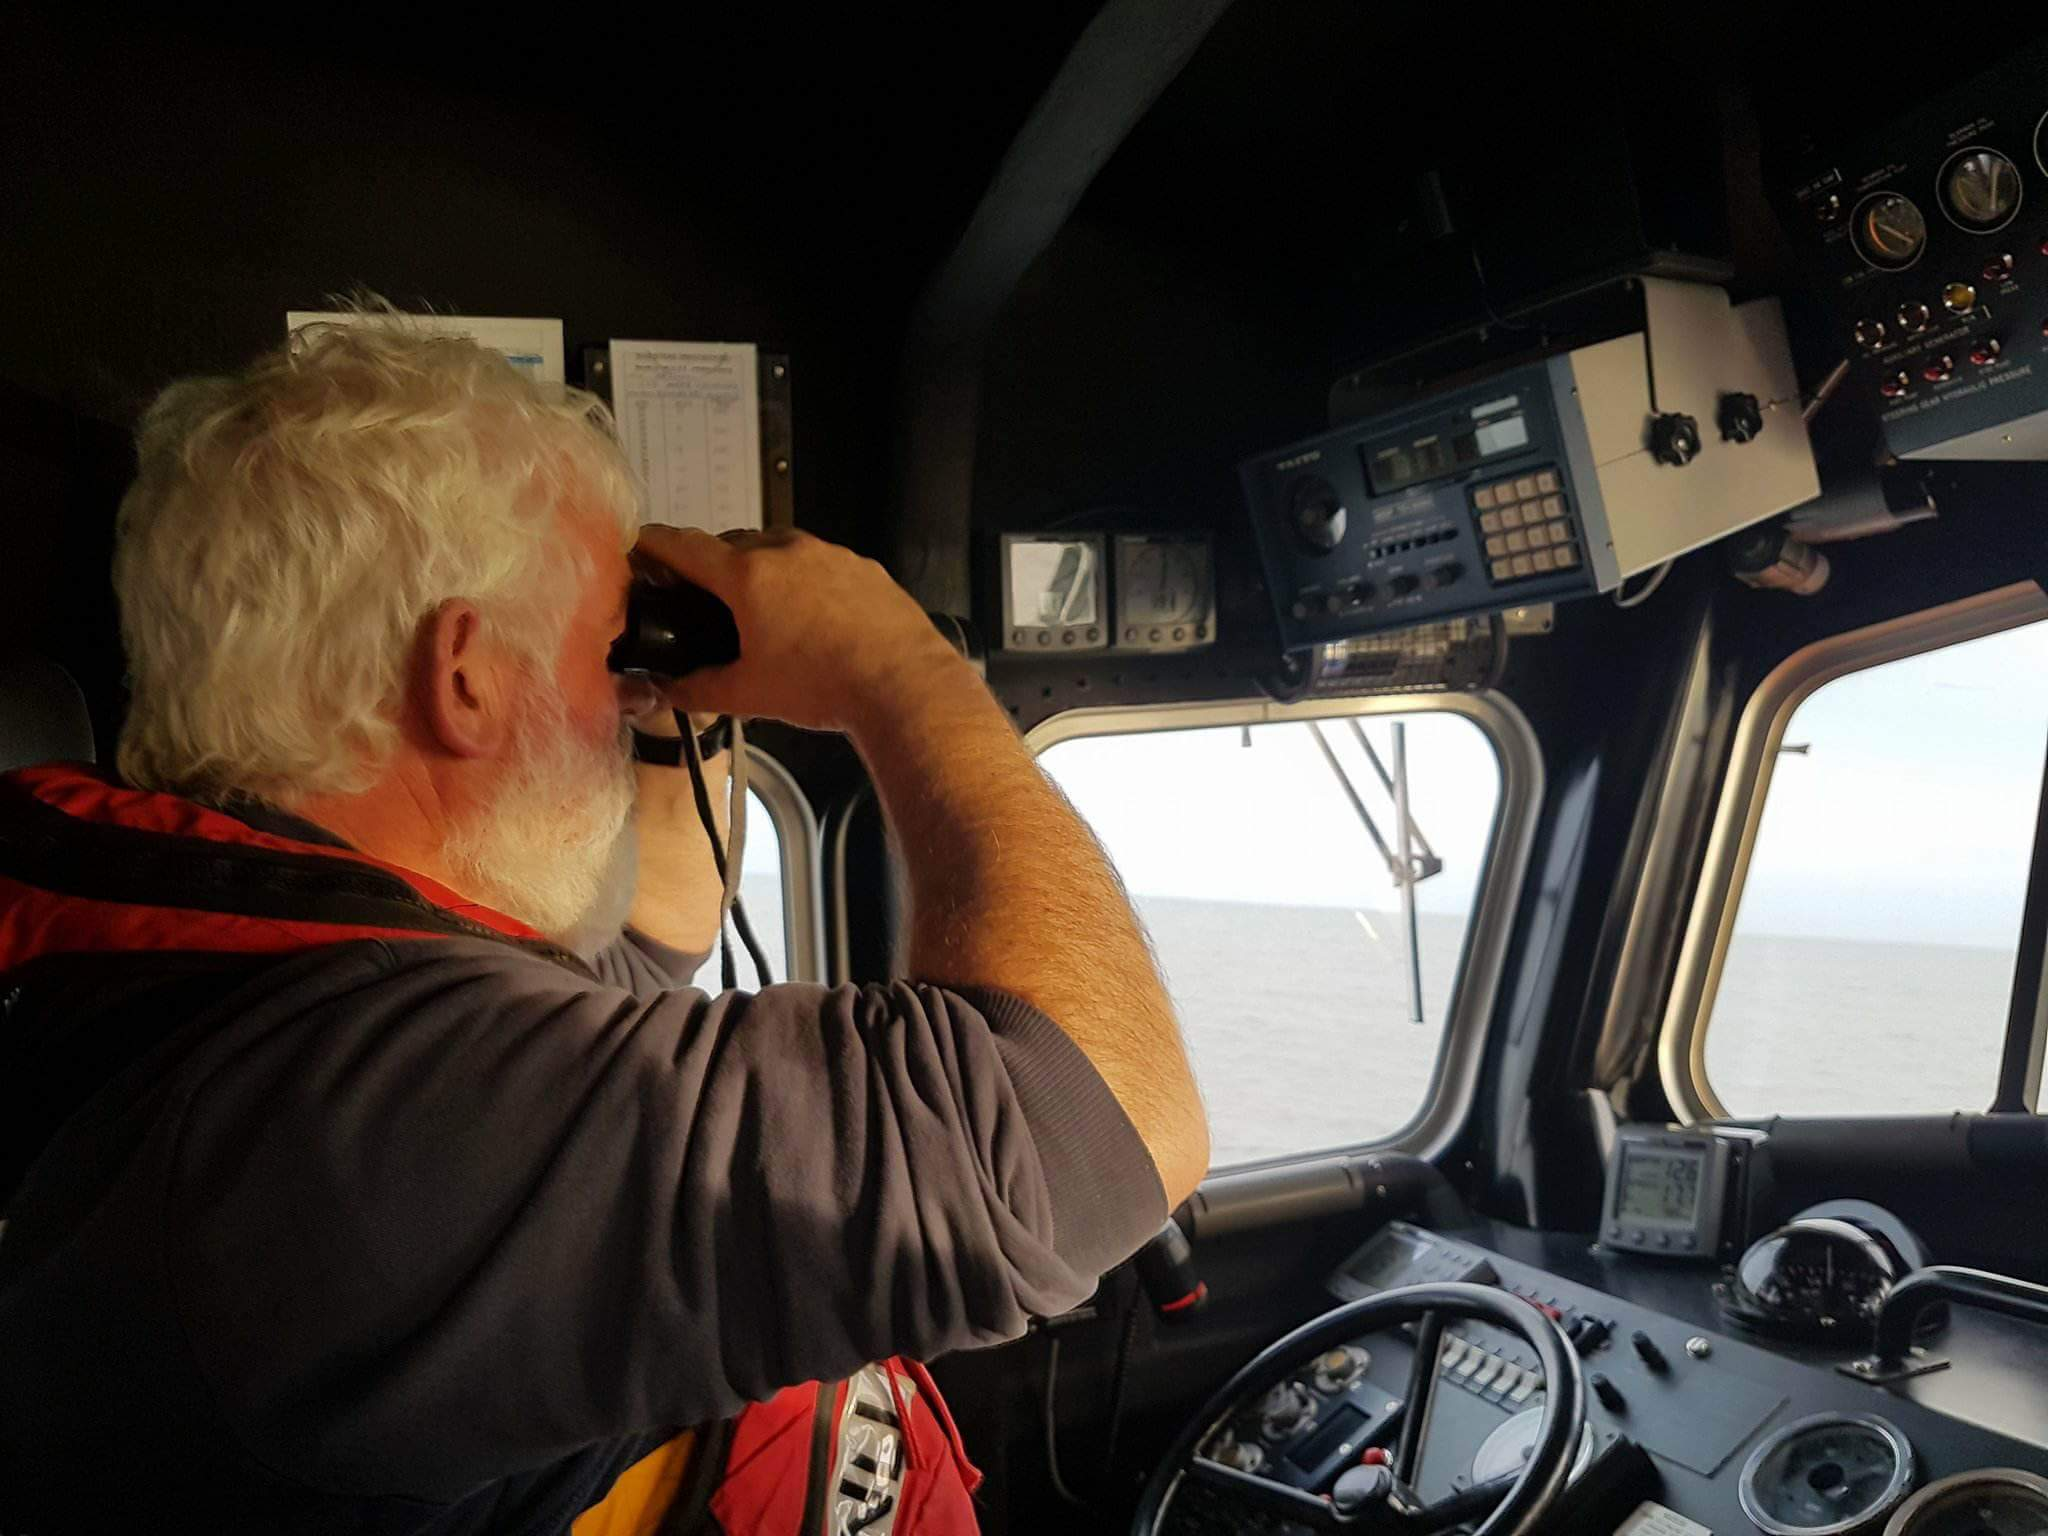 PICTURE OF CREWMEMBER SURVEYING FOR SIGHT OF CASUALTY VESSEL